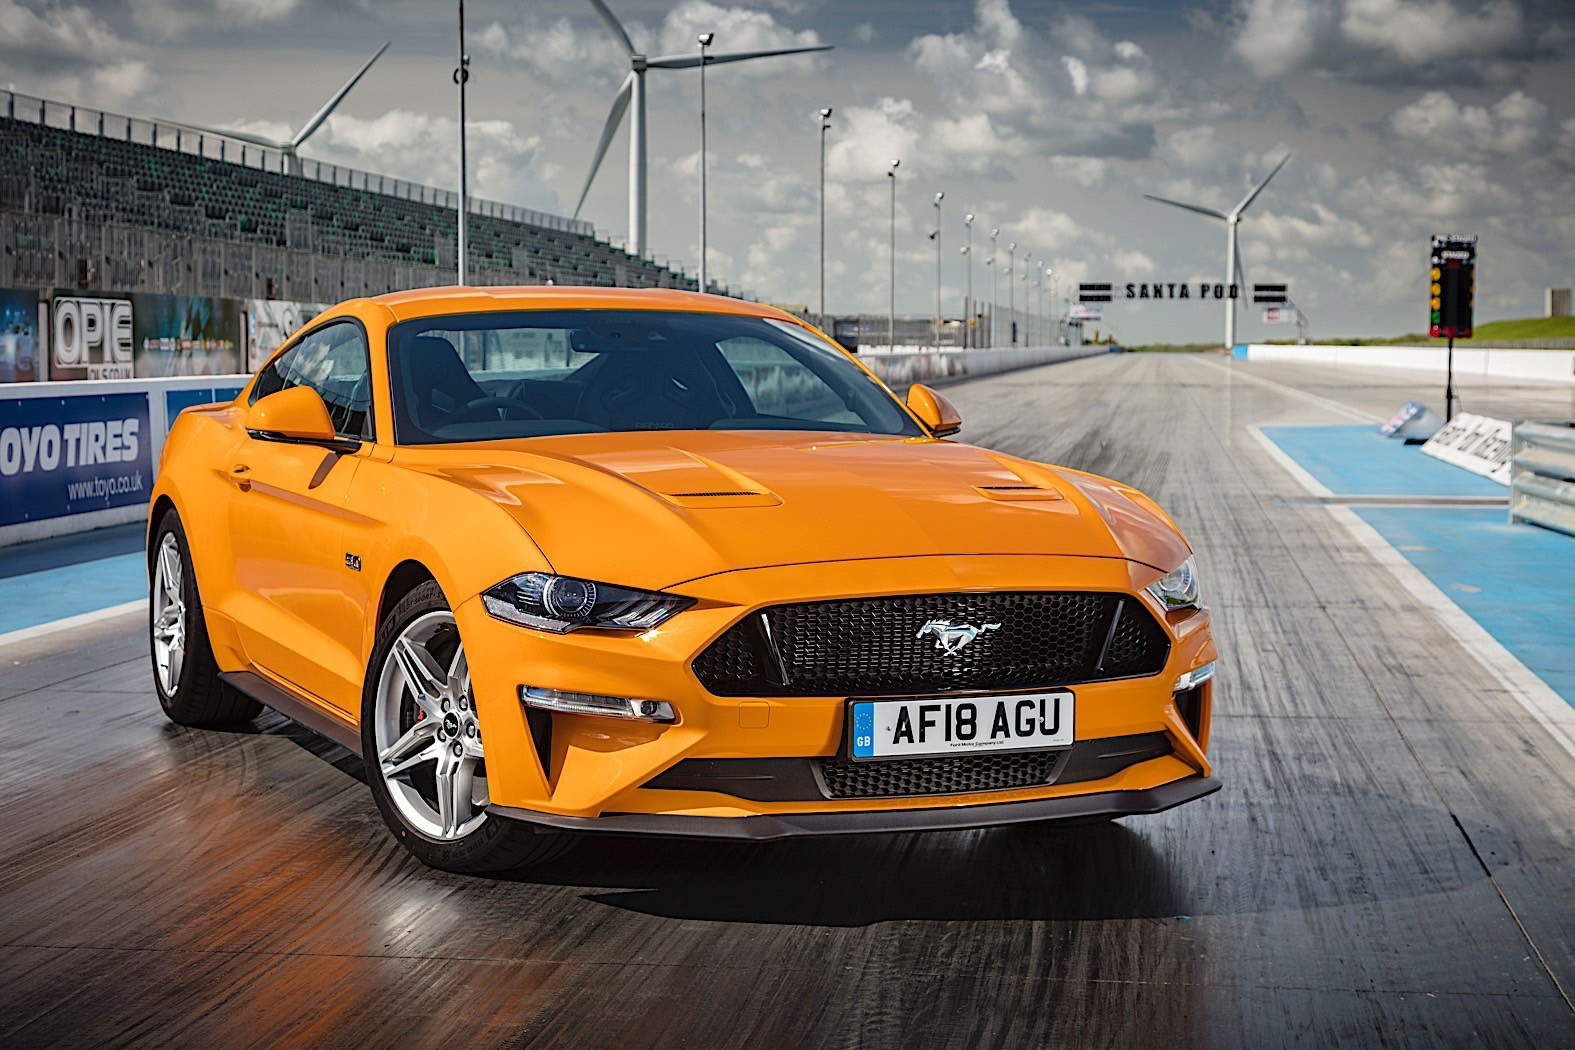 Euro Ford Mustang Gets Bullit Upgrades, 1,000 Watts Sound ... Mustang